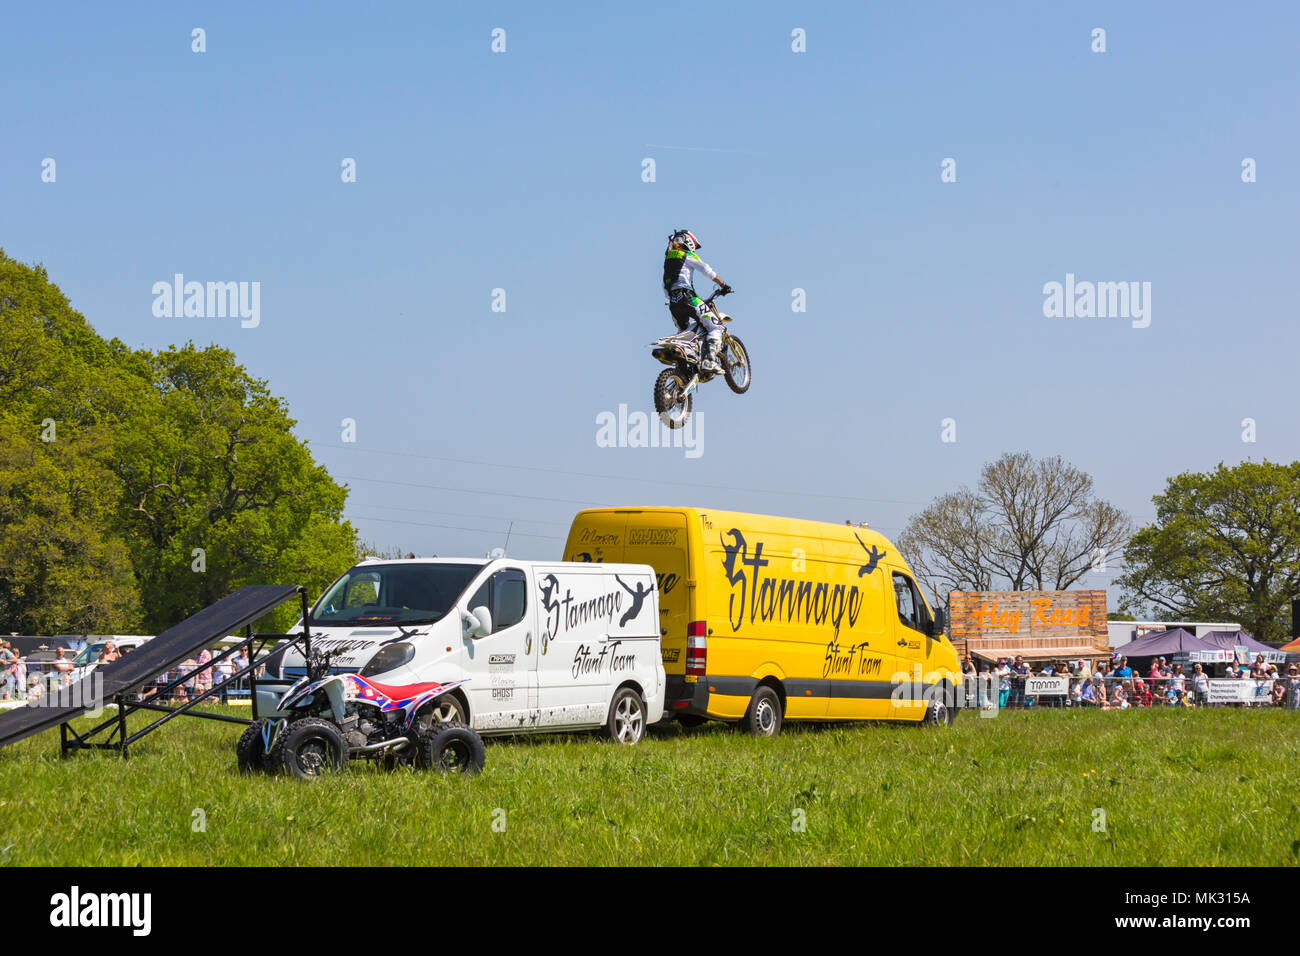 Netley Marsh, Hampshire, UK. 6th May 2018. The first day, of the two day event, Hampshire Game & Country Fair attracts the crowds on a hot sunny day. Stannage International Stunt Display Team thrill the crowds with their motorbike display. Credit: Carolyn Jenkins/Alamy Live News - Stock Image